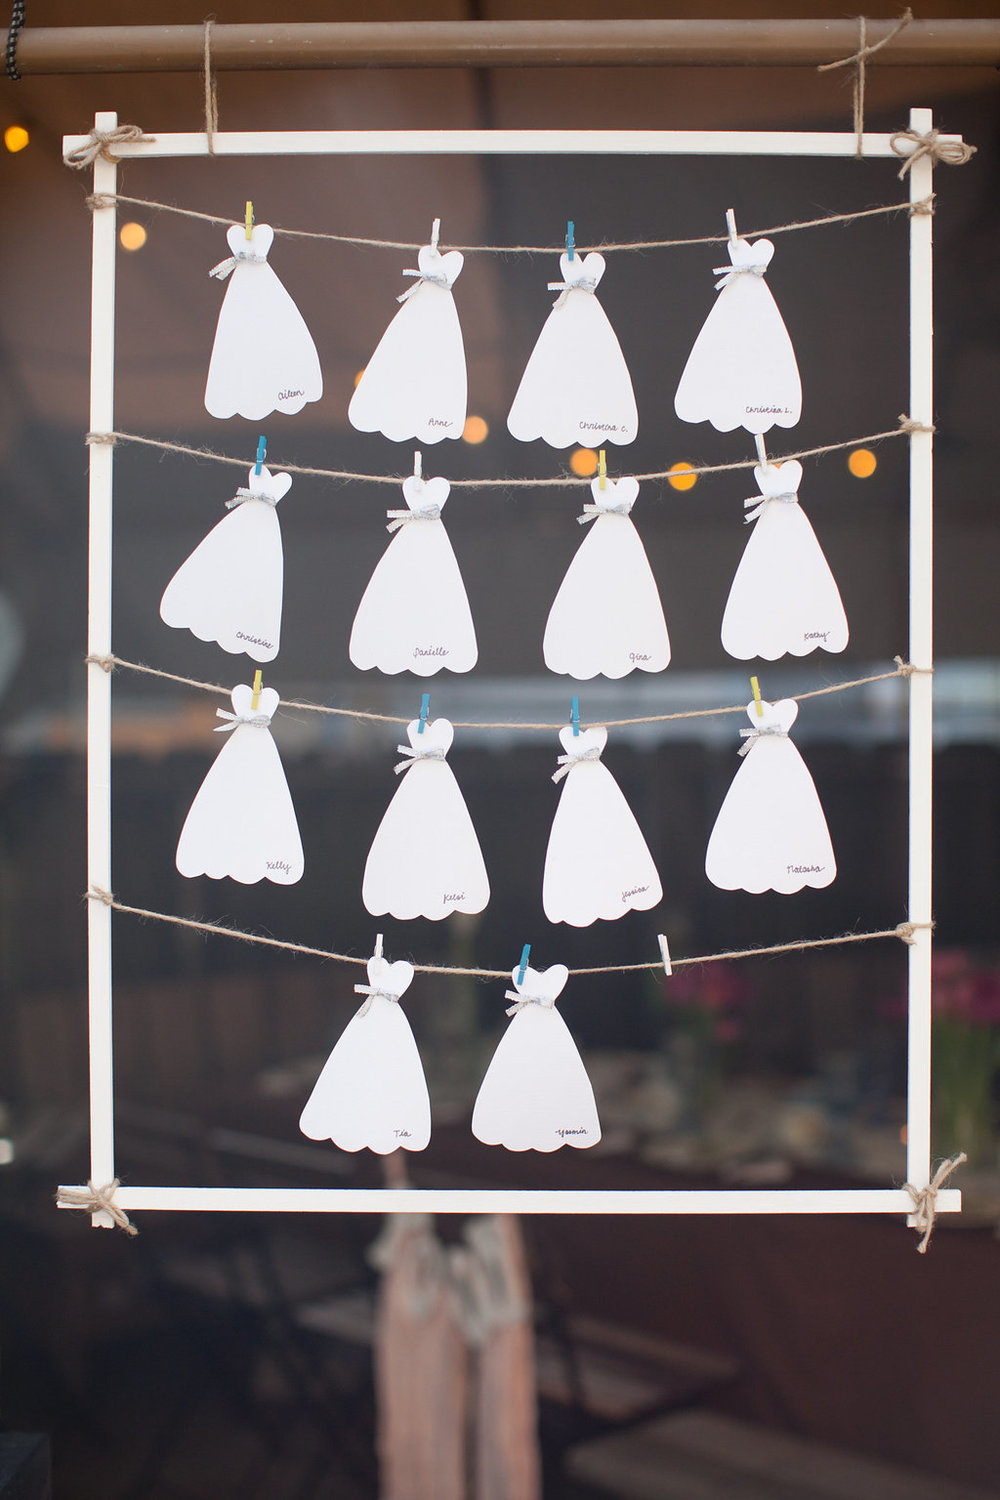 Wedding dresses for guests to write notes to the bride-to-be!